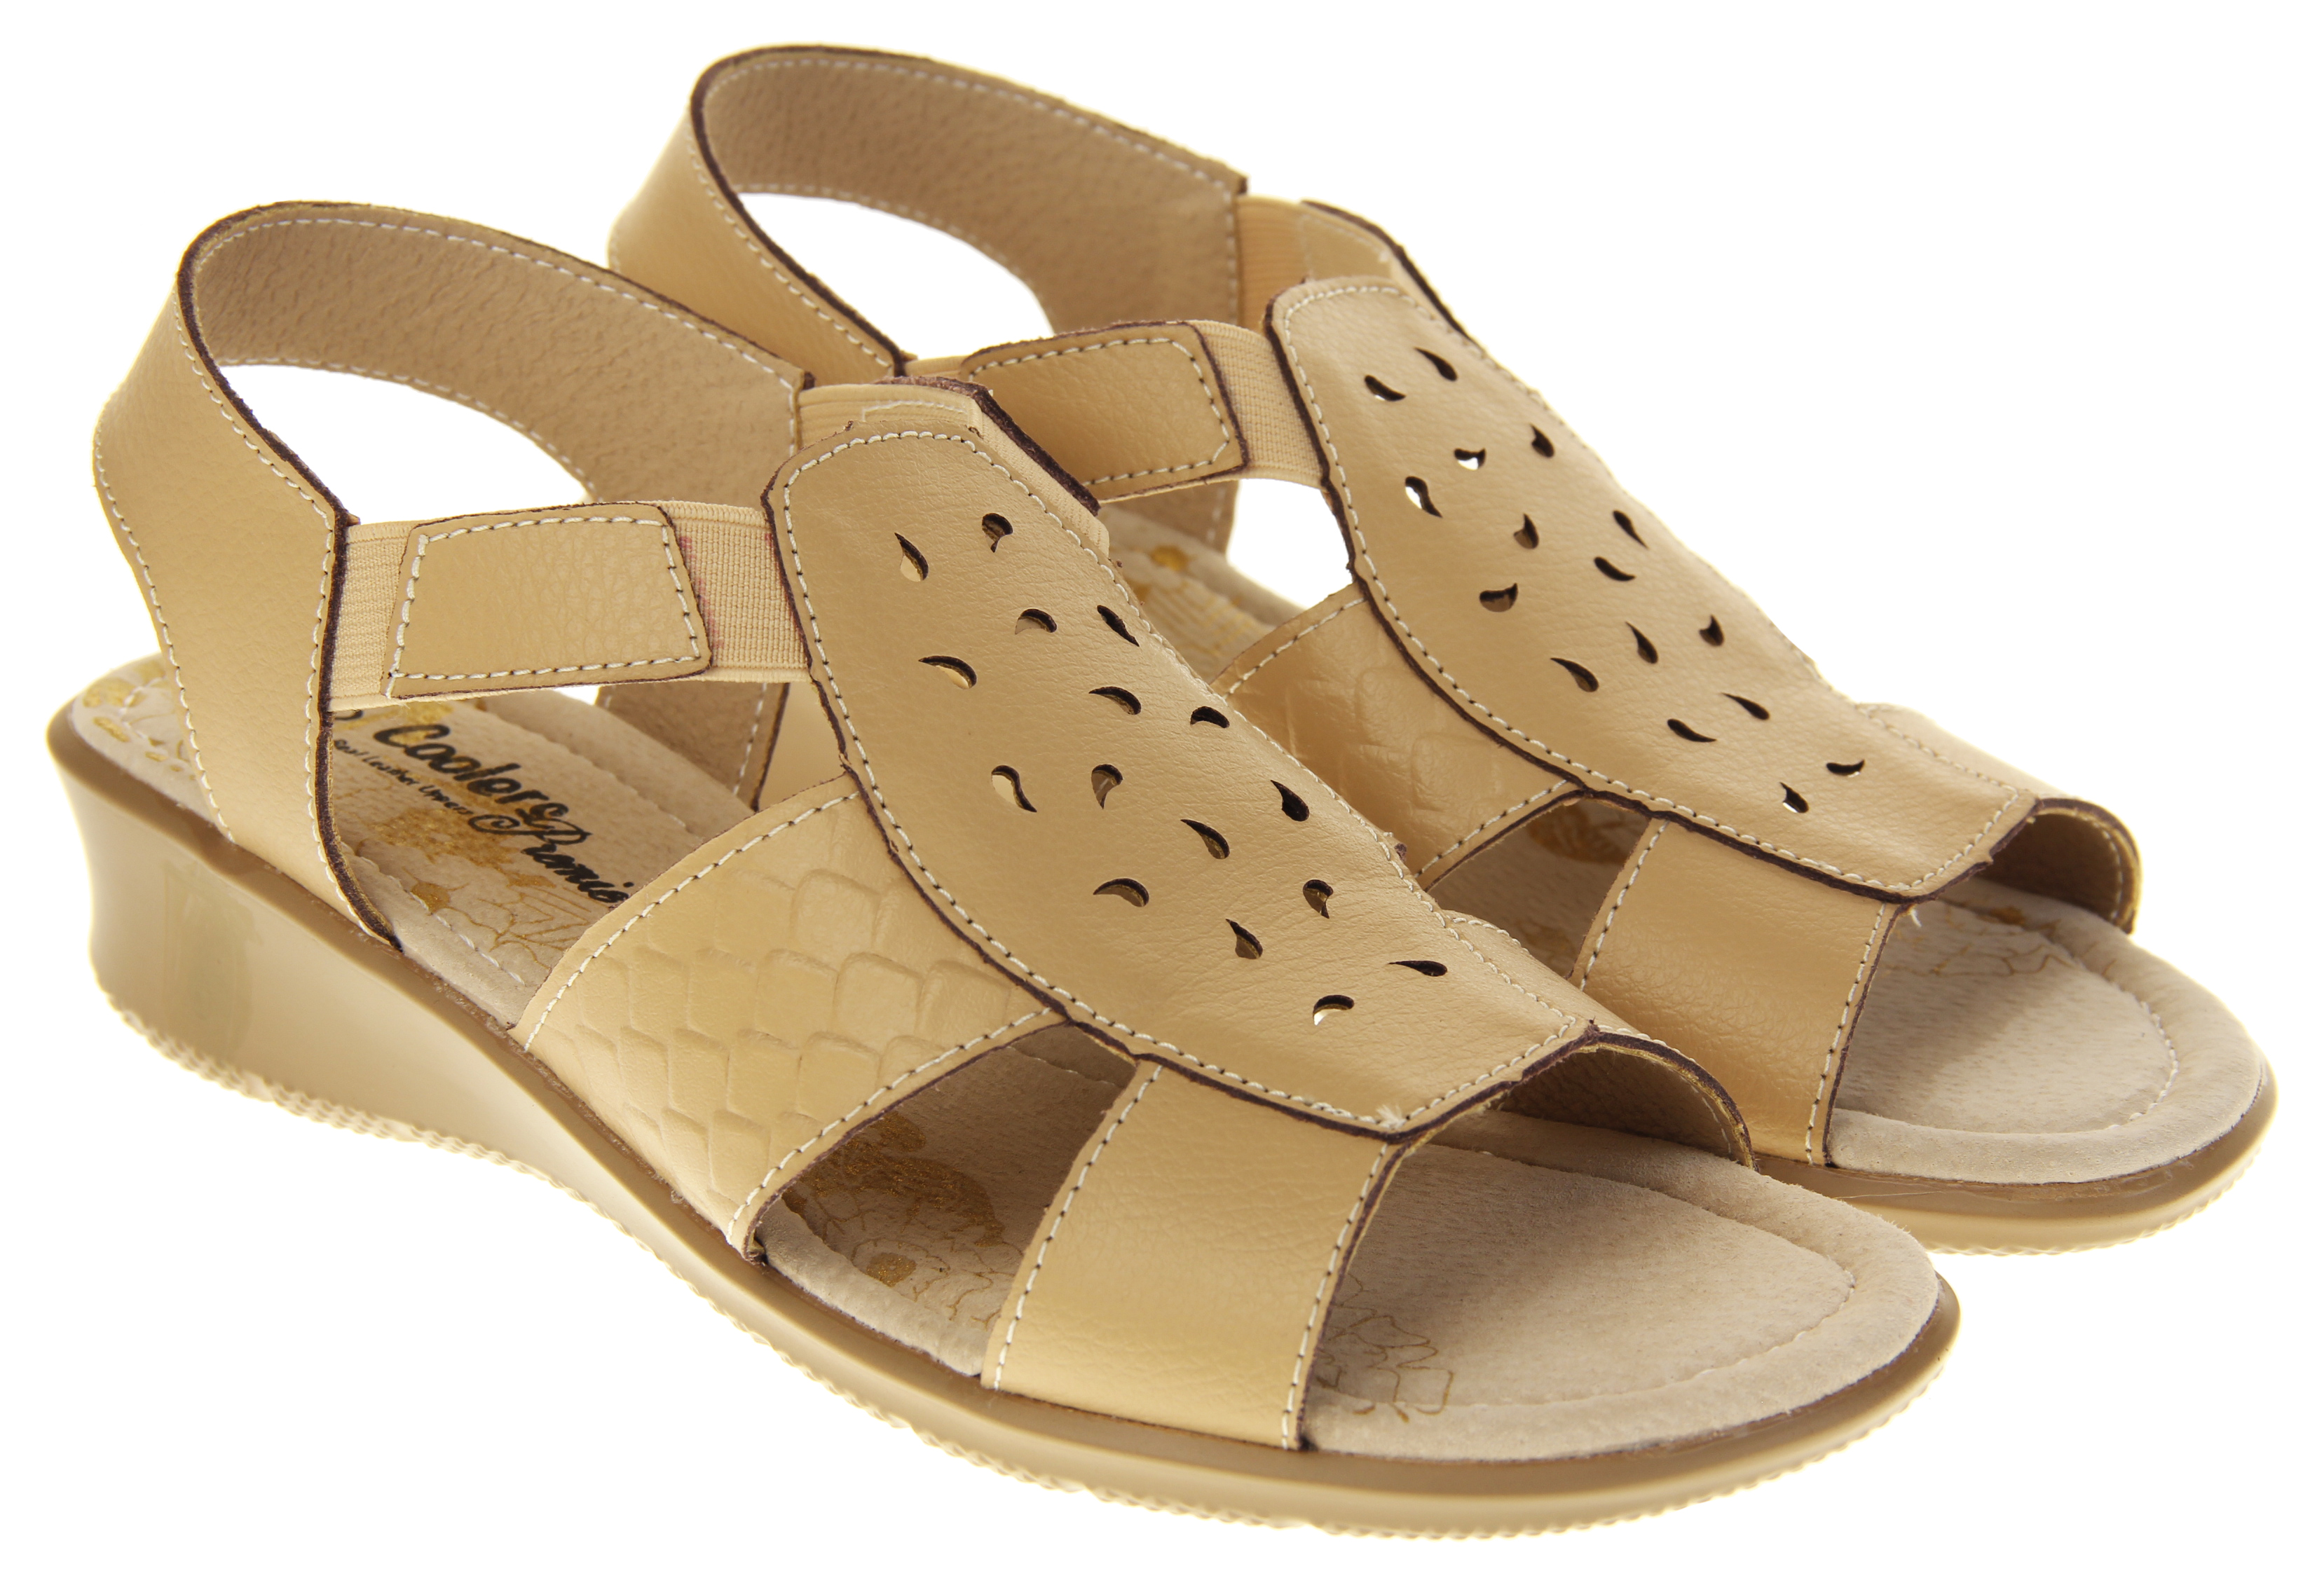 Holiday Coolers Premier Ladies Leather Cross Strap Casual Shoes Comfort